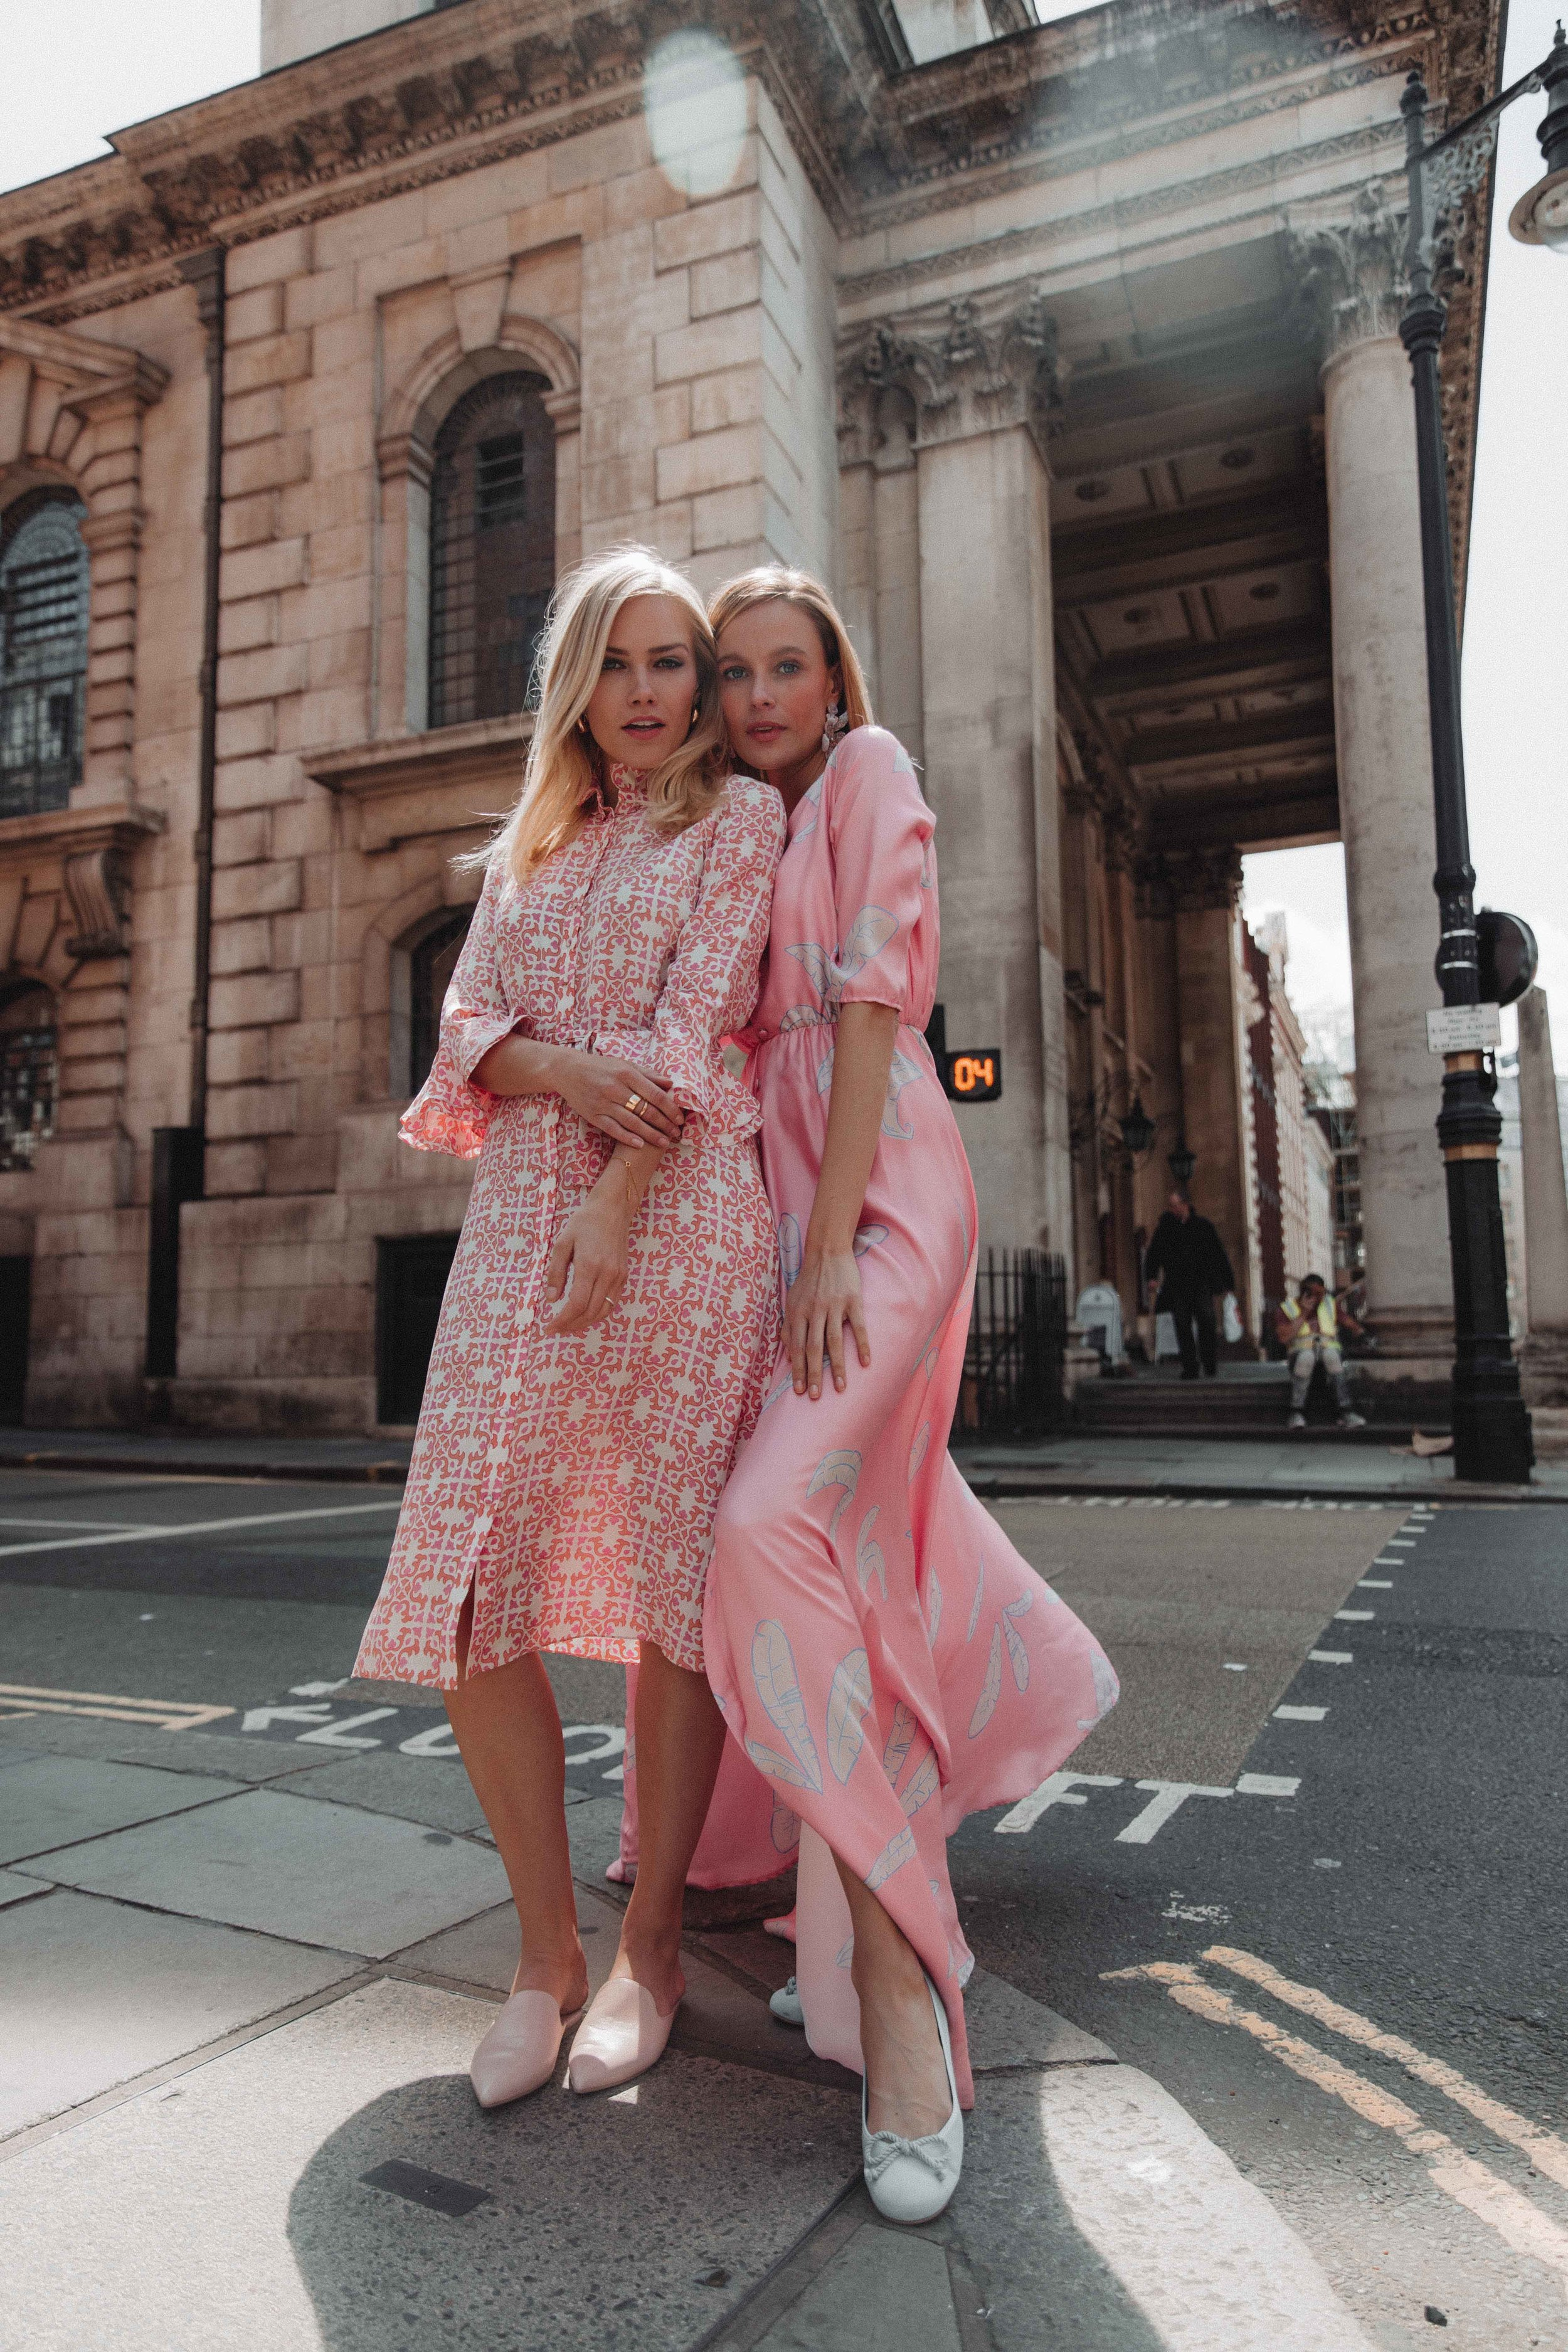 Pink dresses - Summer street style. Photo by: Lydia Collins